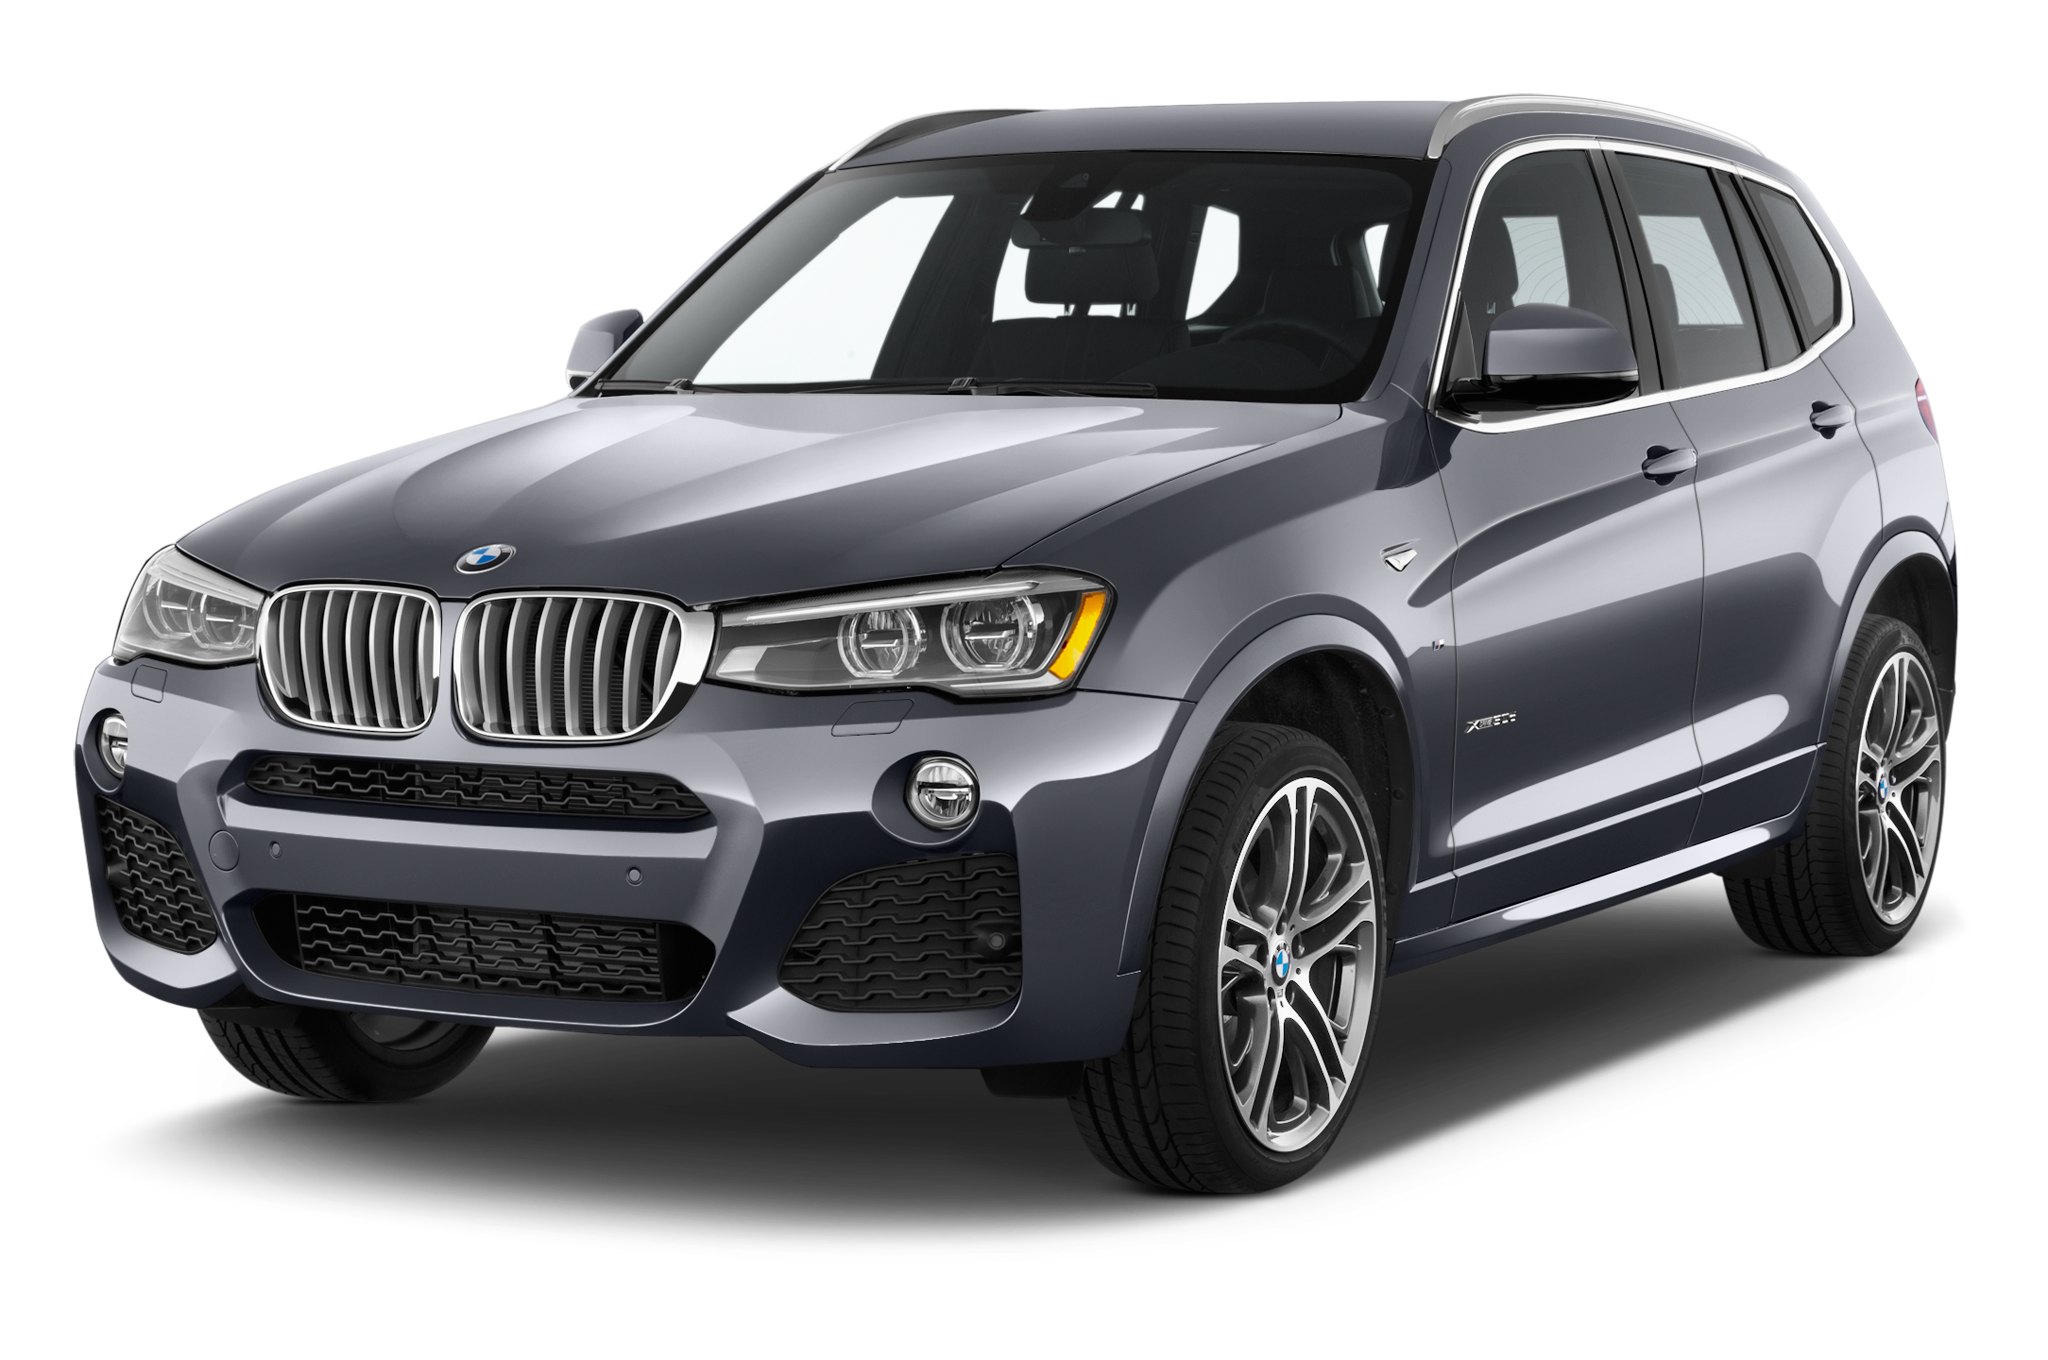 bmw diesel reviews and rating motor trend canada #22461